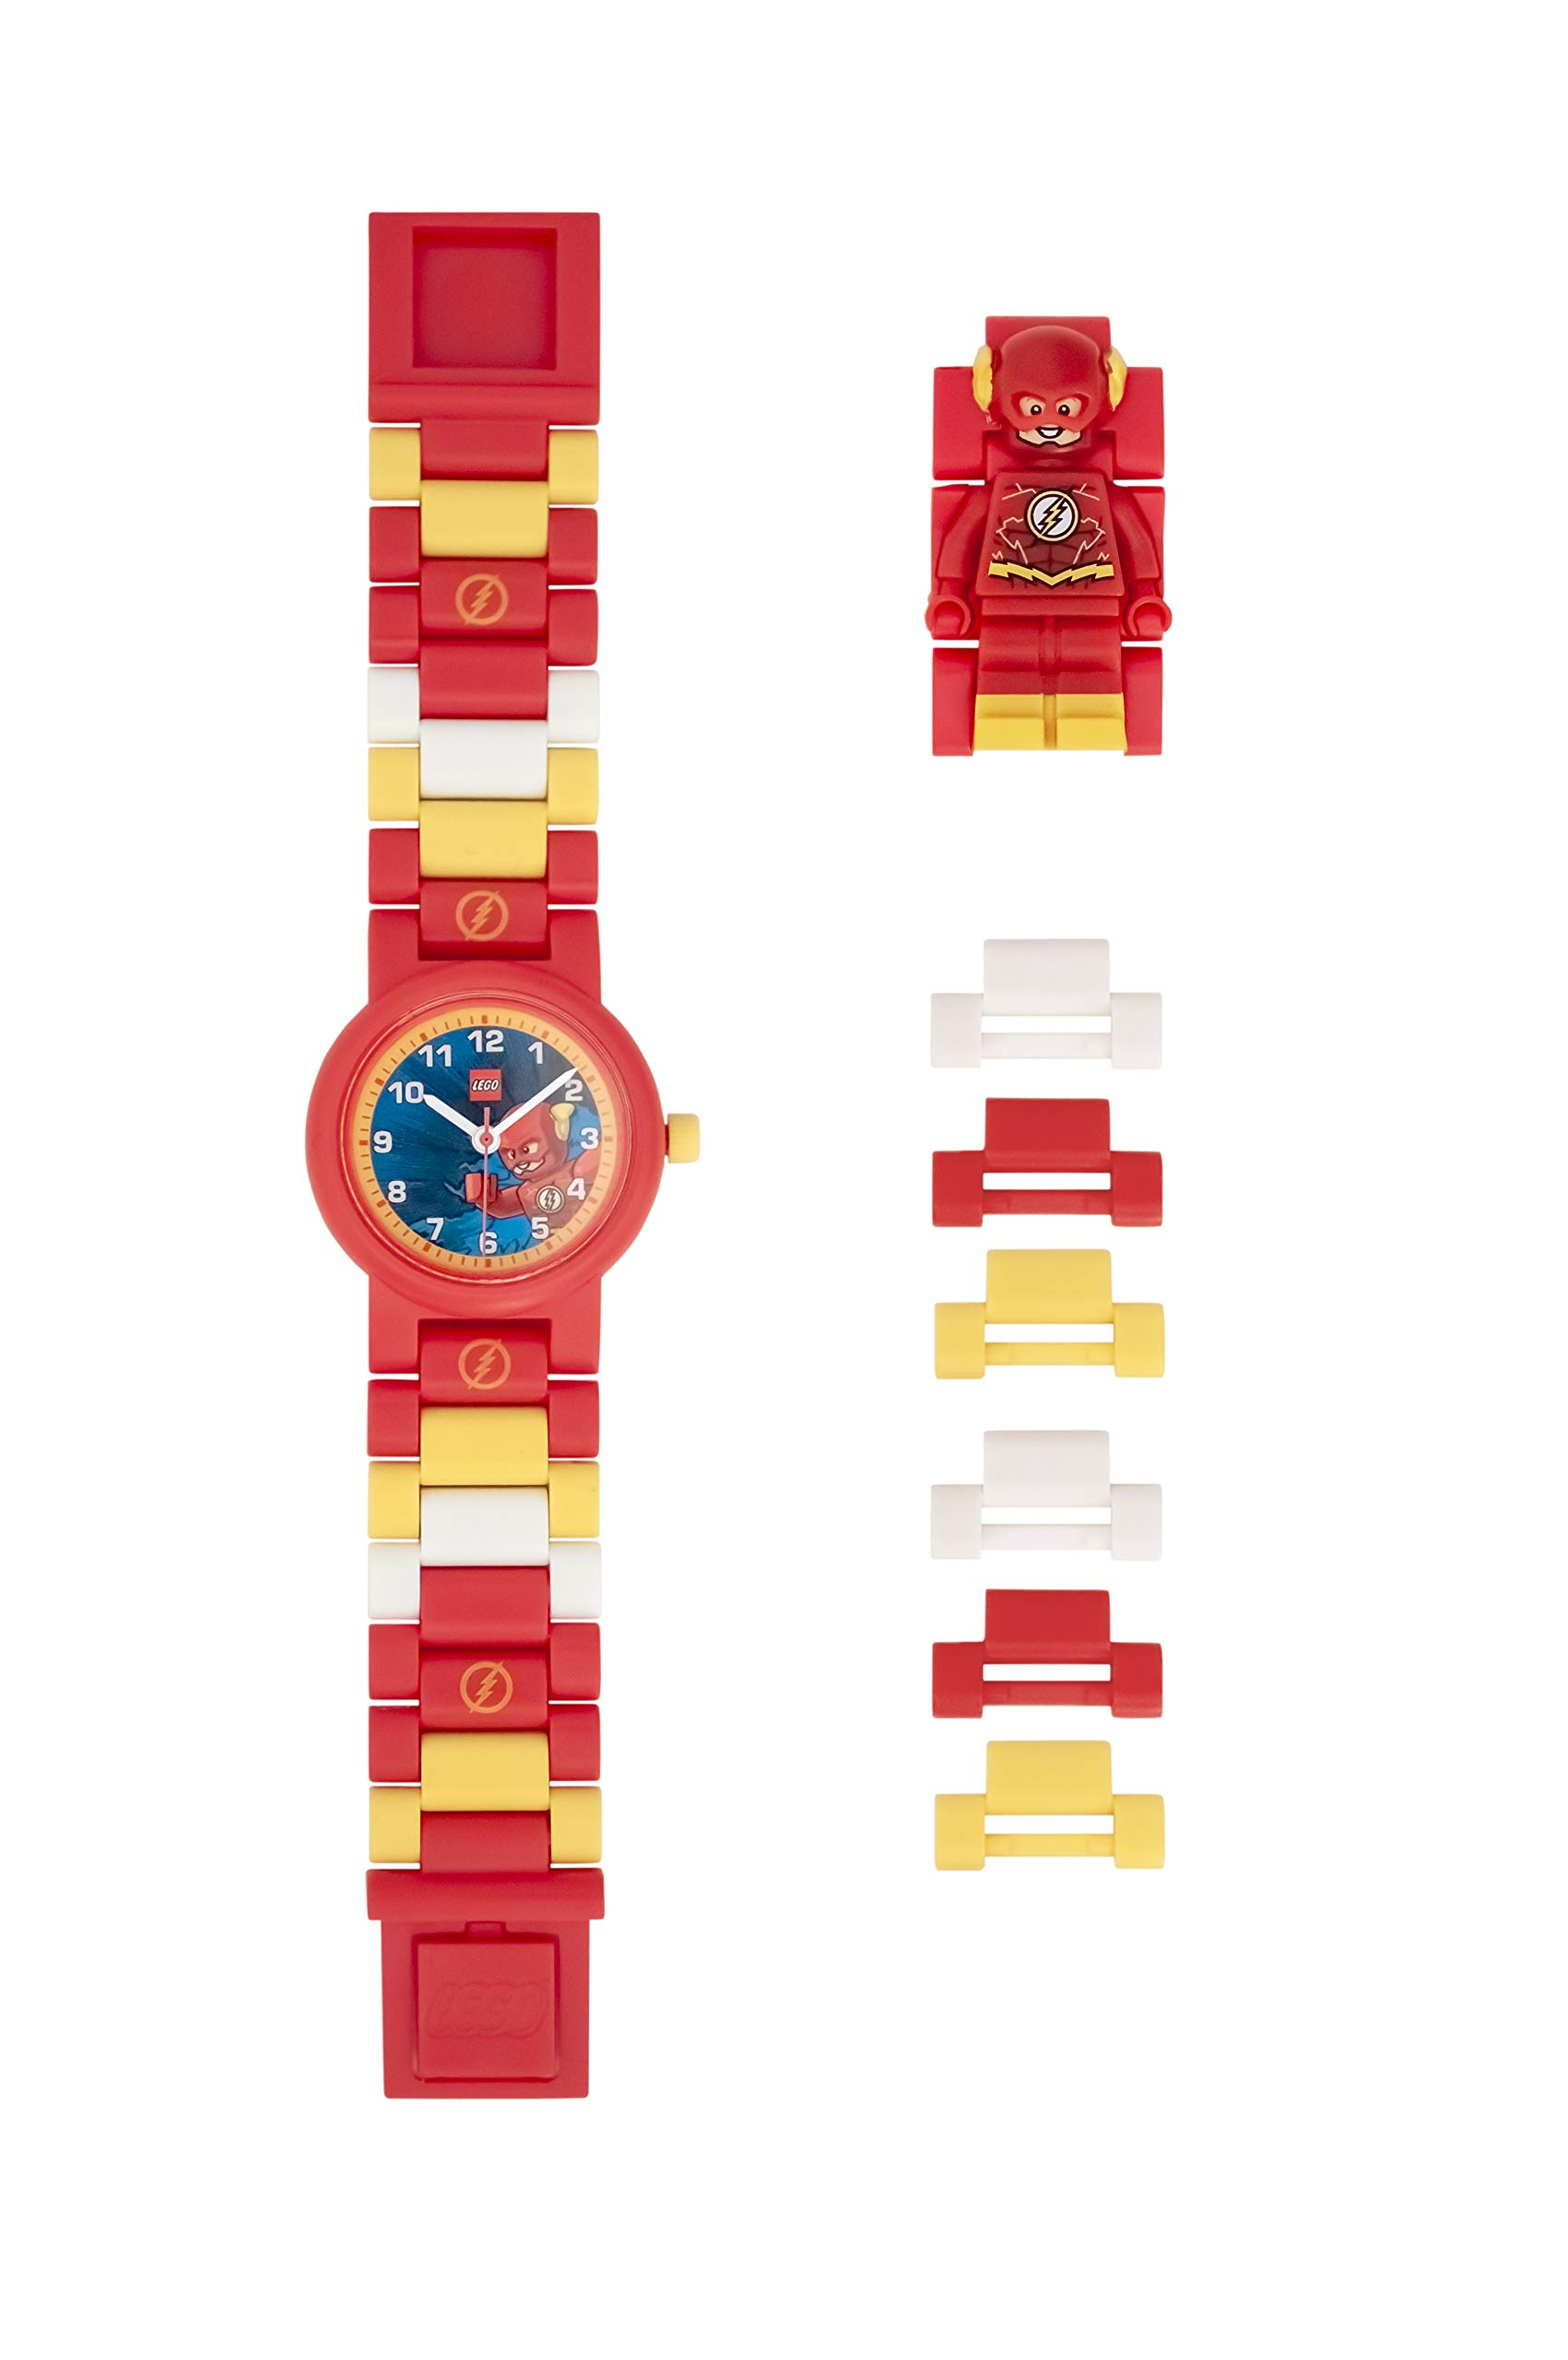 ClicTime Boys' LEGO The Flash Analog Quartz Watch with Plastic Strap, Red, 20 (Model: 8021582) by ClicTime